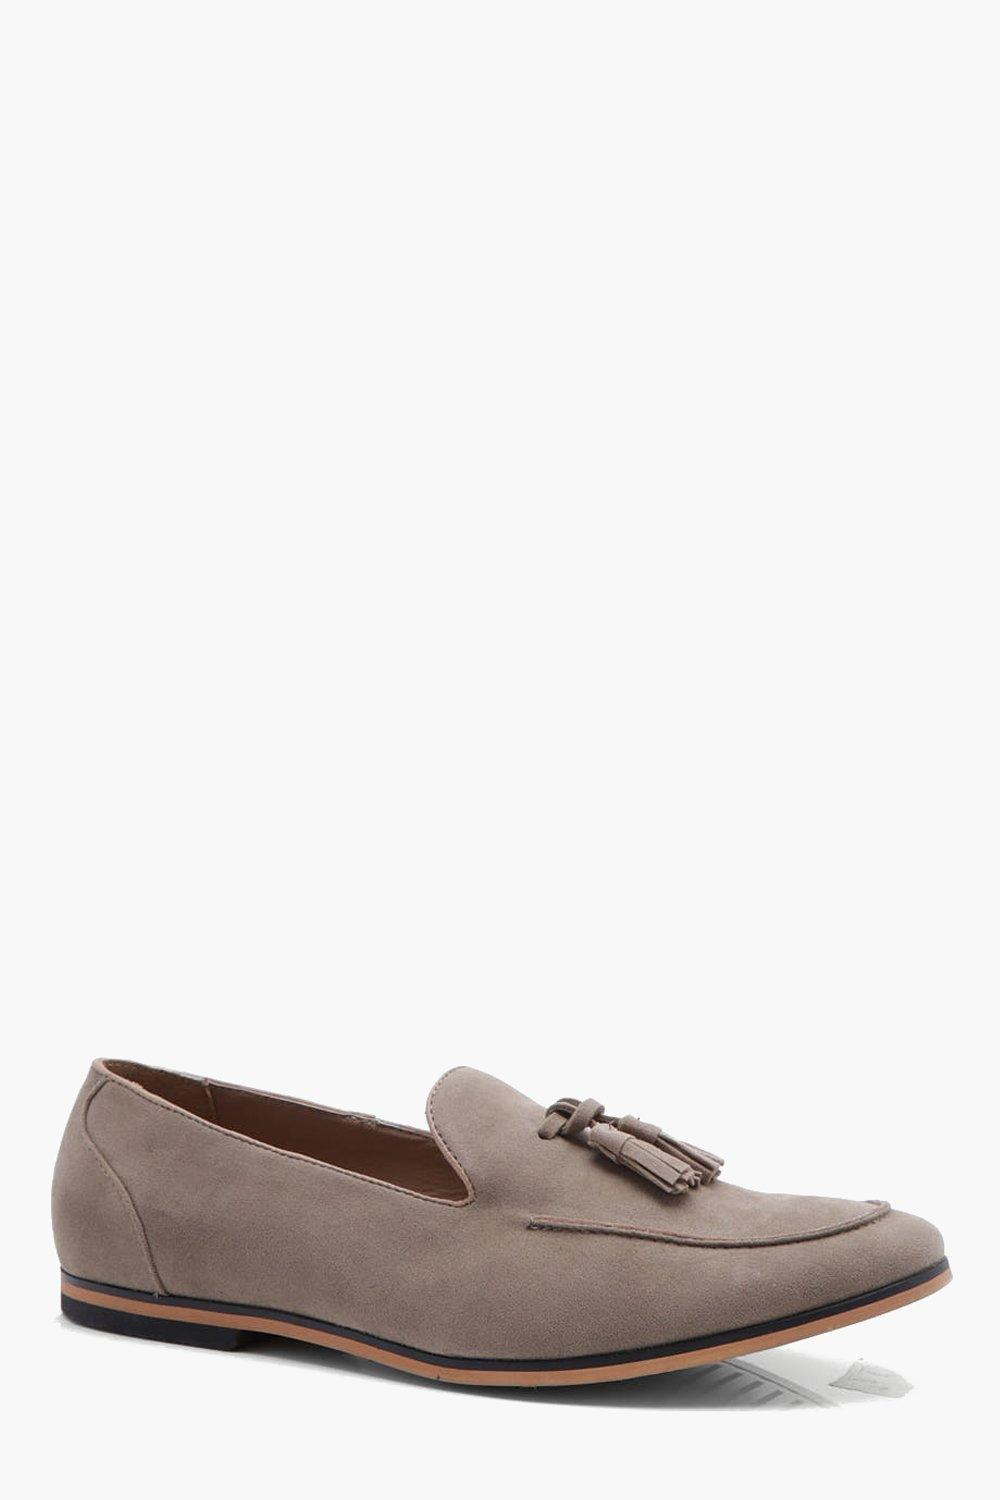 boohooMAN sand Faux Suede Tassel Loafer